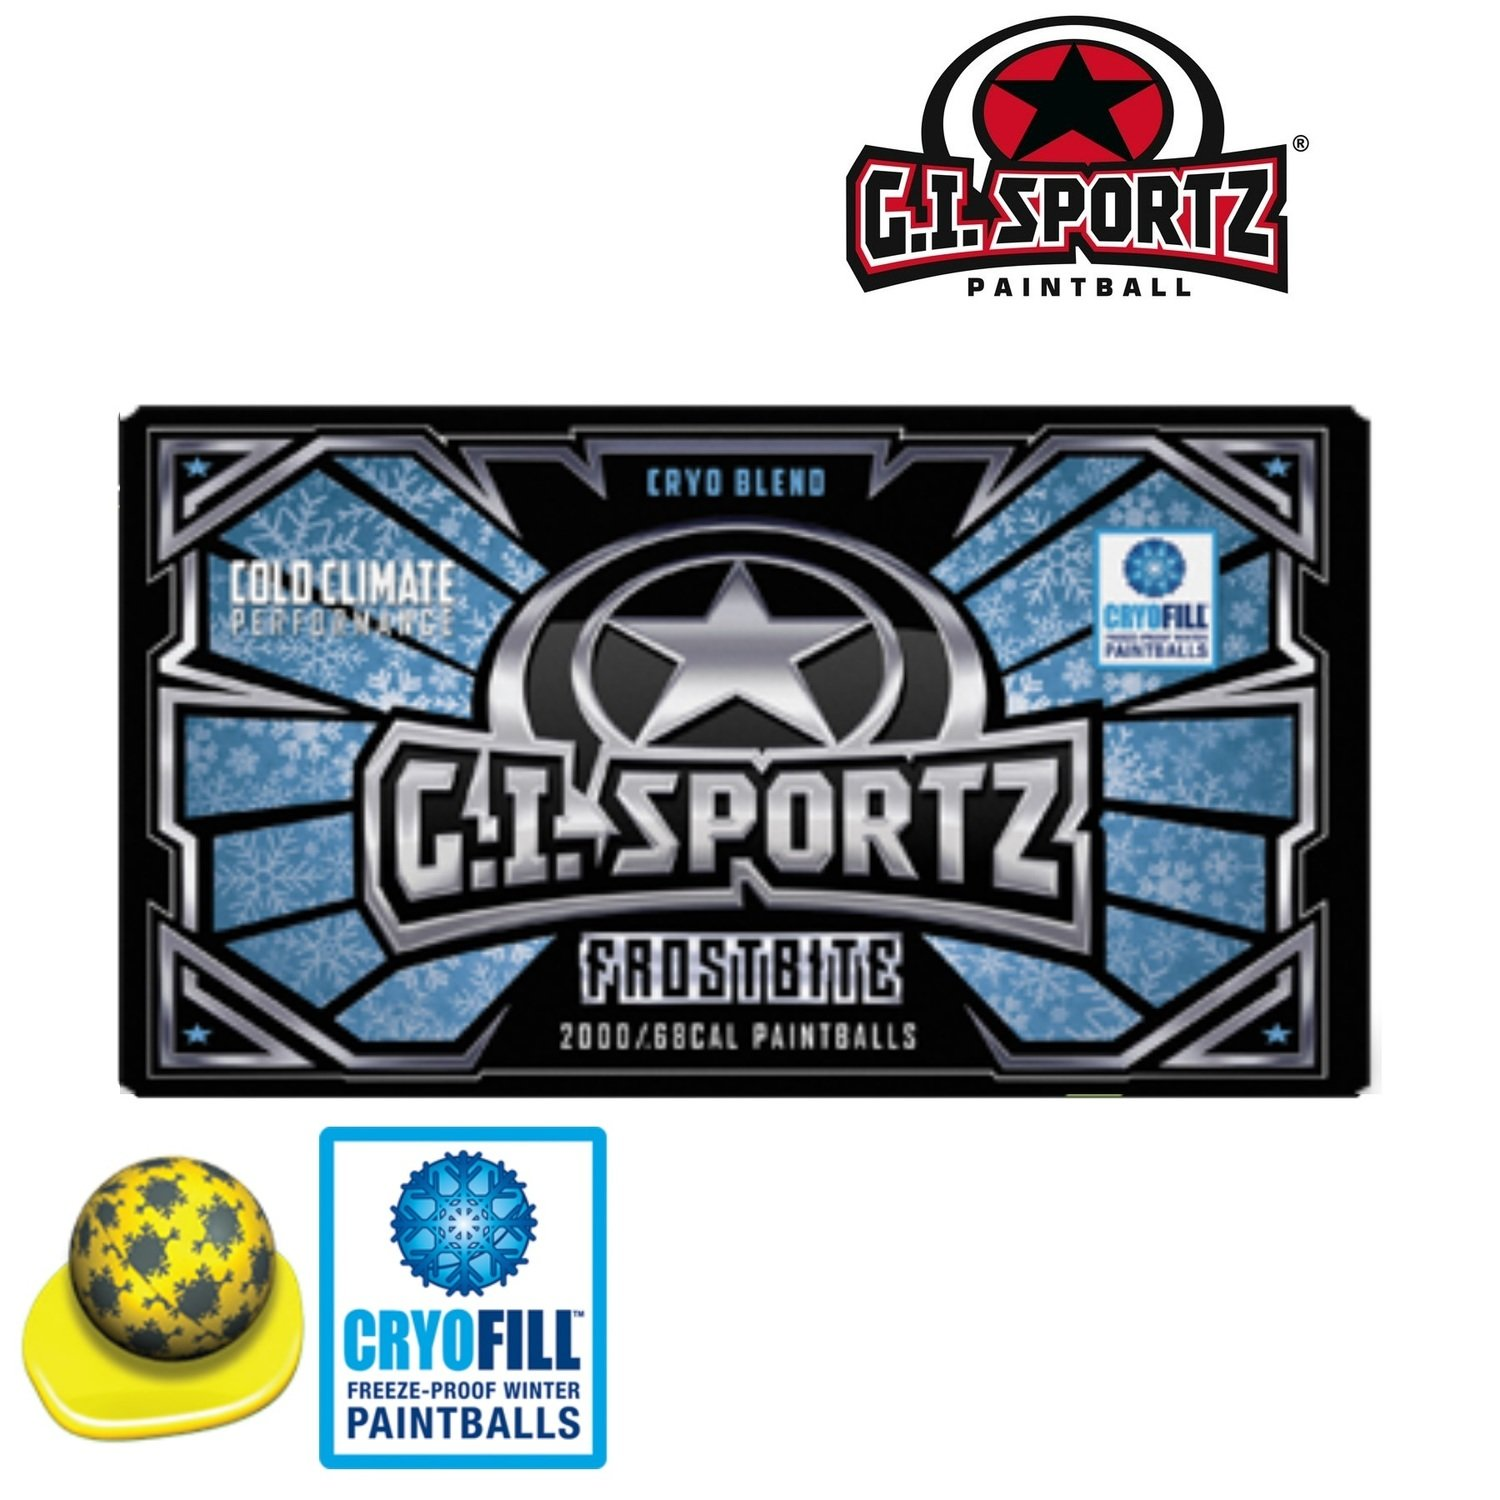 G.I. Sportz Frostbite .68 cal Paintballs - Case of 2000 Rds - Yellow Fill